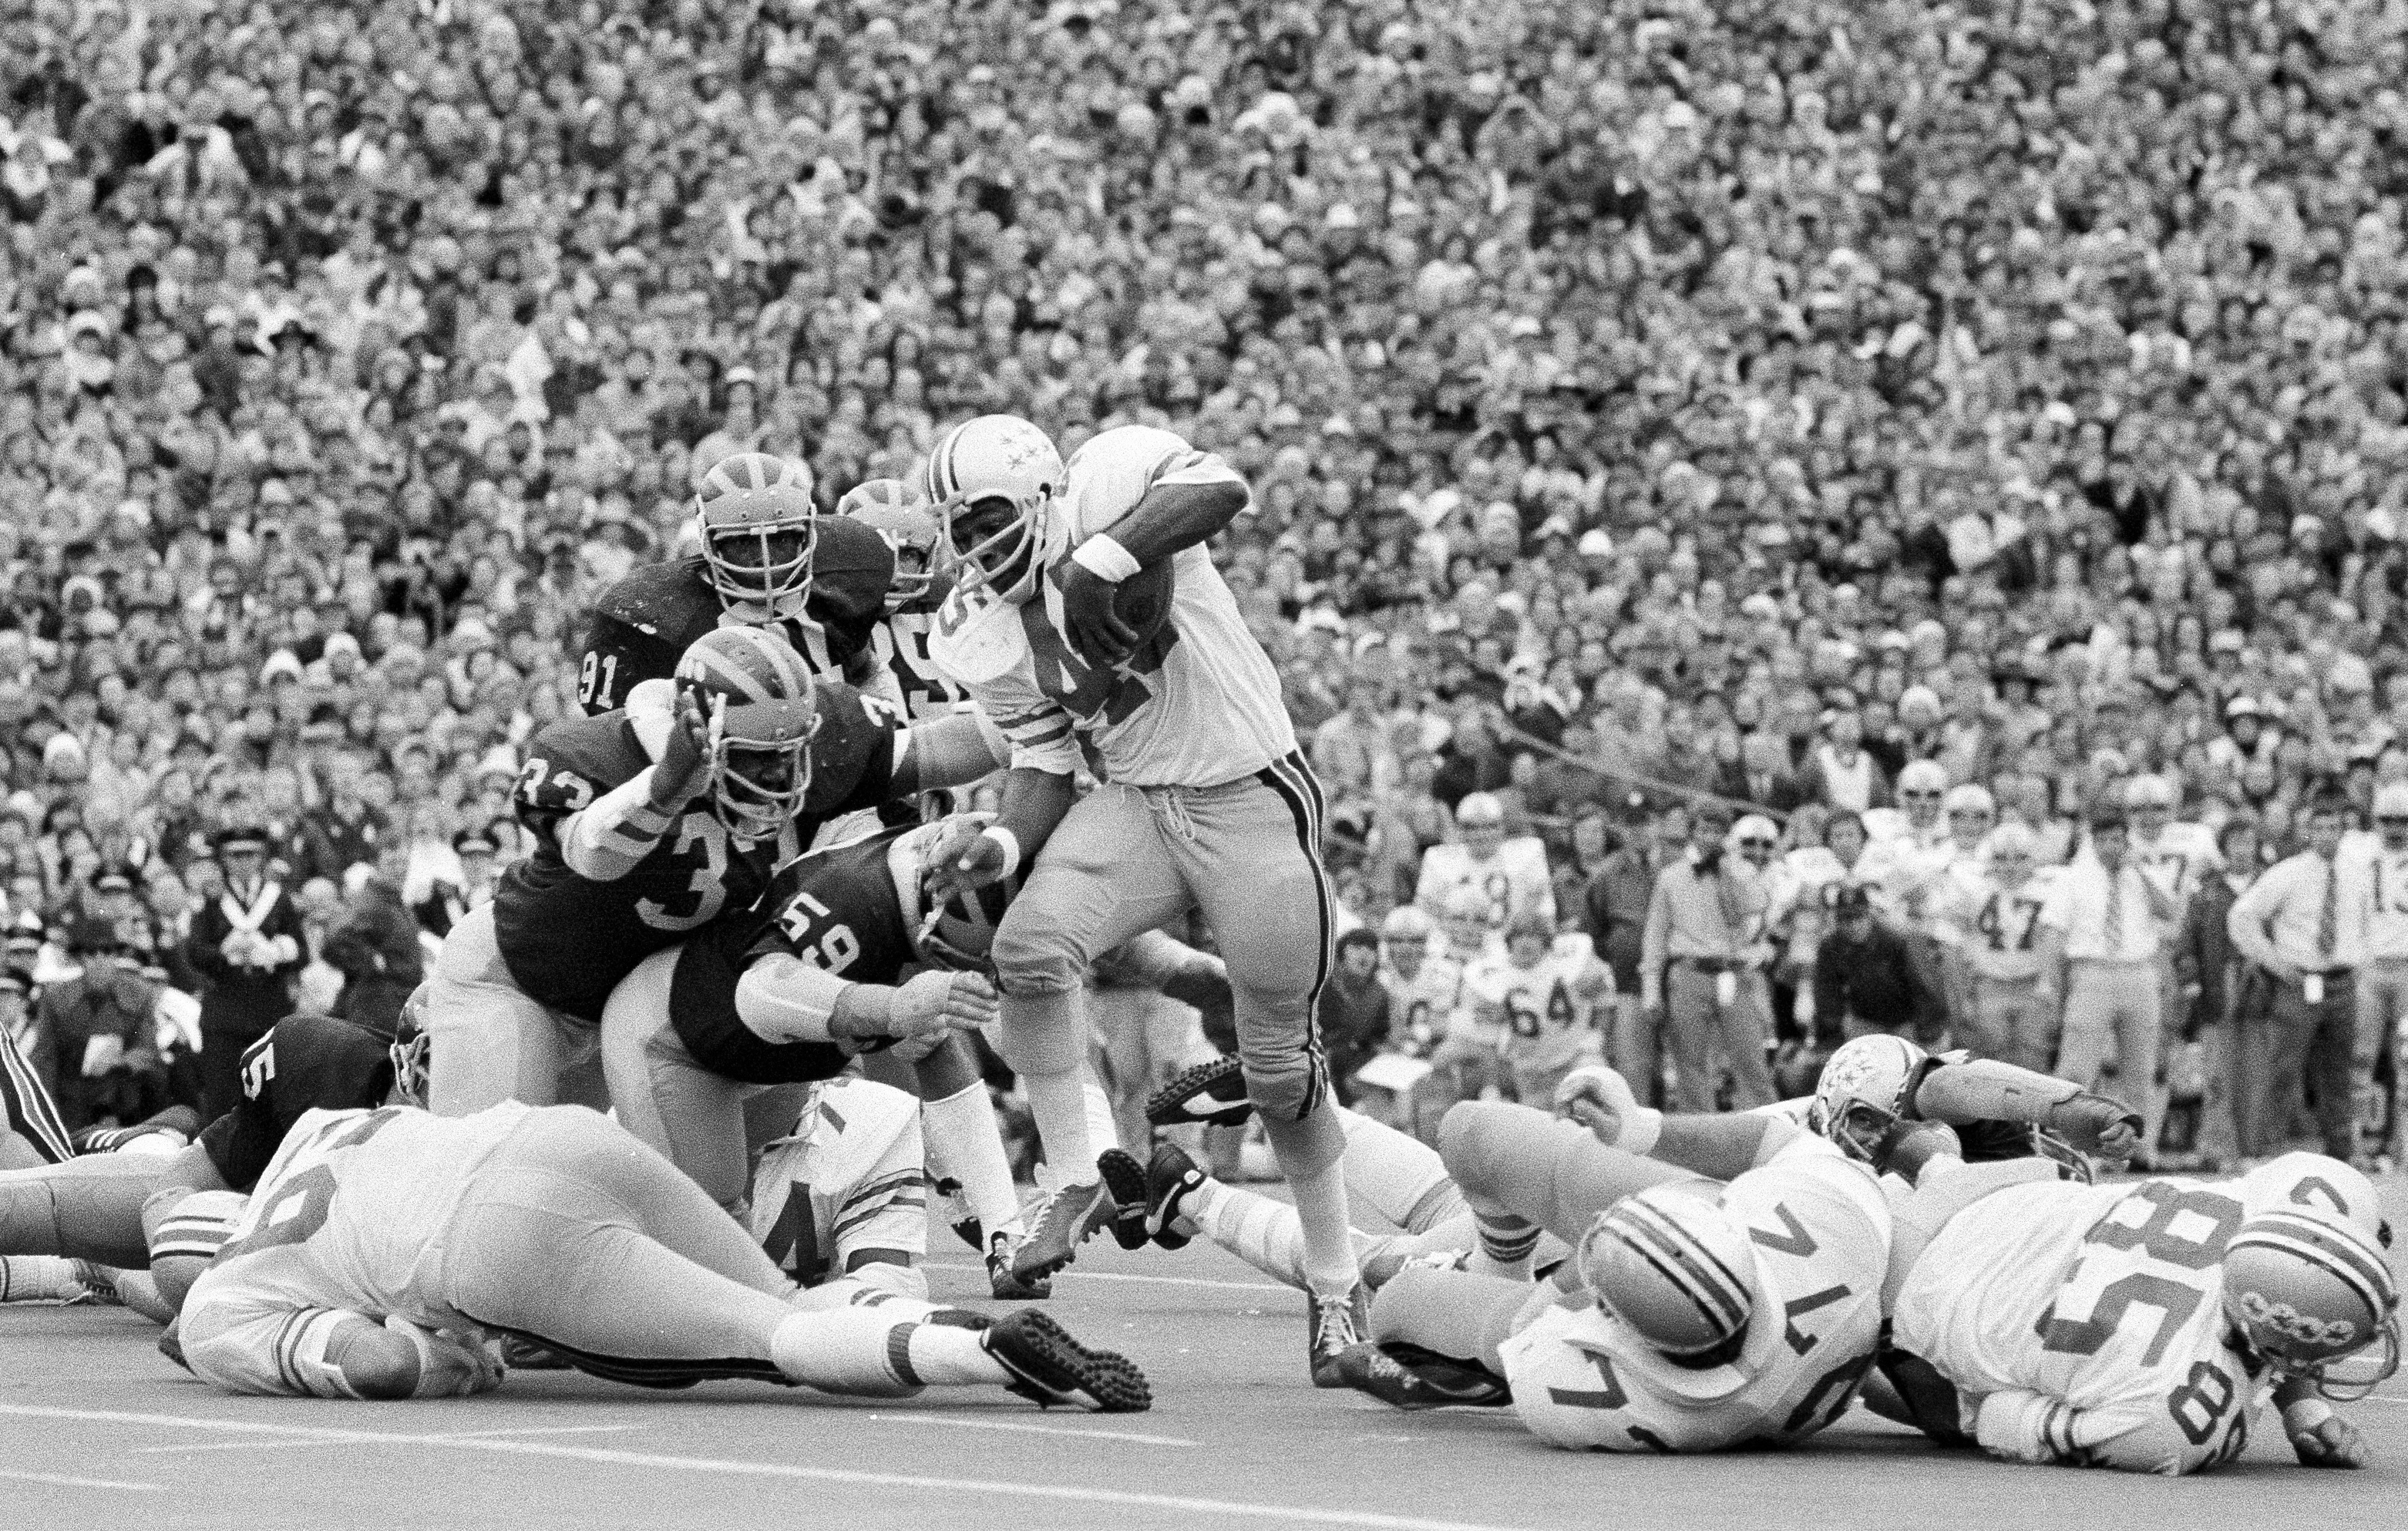 FILE - In this Nov. 24, 1973, file photo, Ohio State's Archie Griffin picks up some of his game-high 163 yards against Michigan during an NCAA college football game in Ann Arbor, Mich., as Michigan's Walt Williamson (91), Carl Russ (33) and Steve Strinko